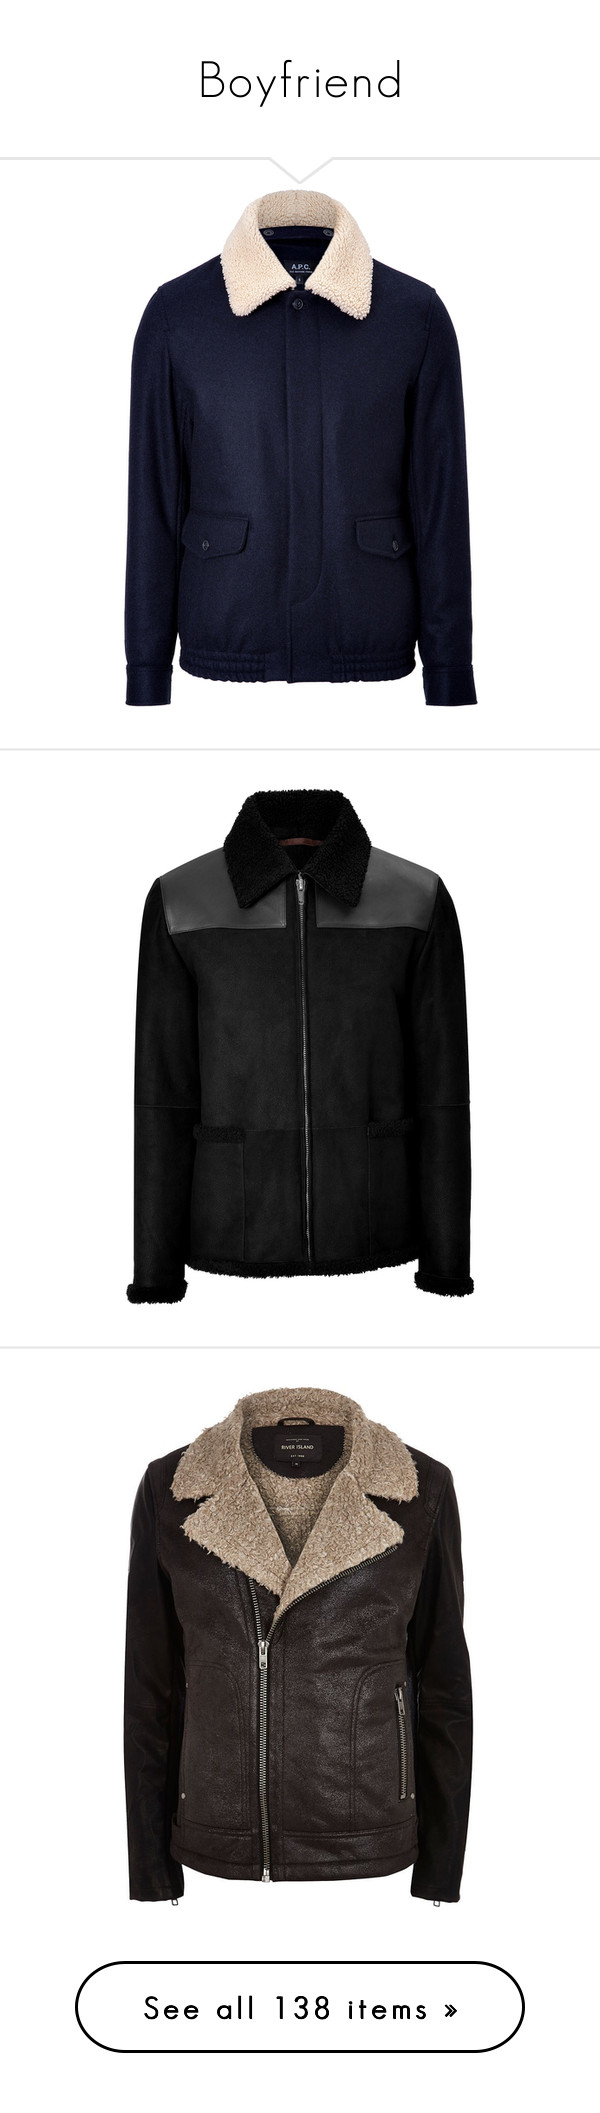 """Boyfriend"" by irisneline ❤ liked on Polyvore featuring men's fashion, men's clothing, men's outerwear, men's coats, men's jackets, nick hudson, black, jackets, sale y outerwear"